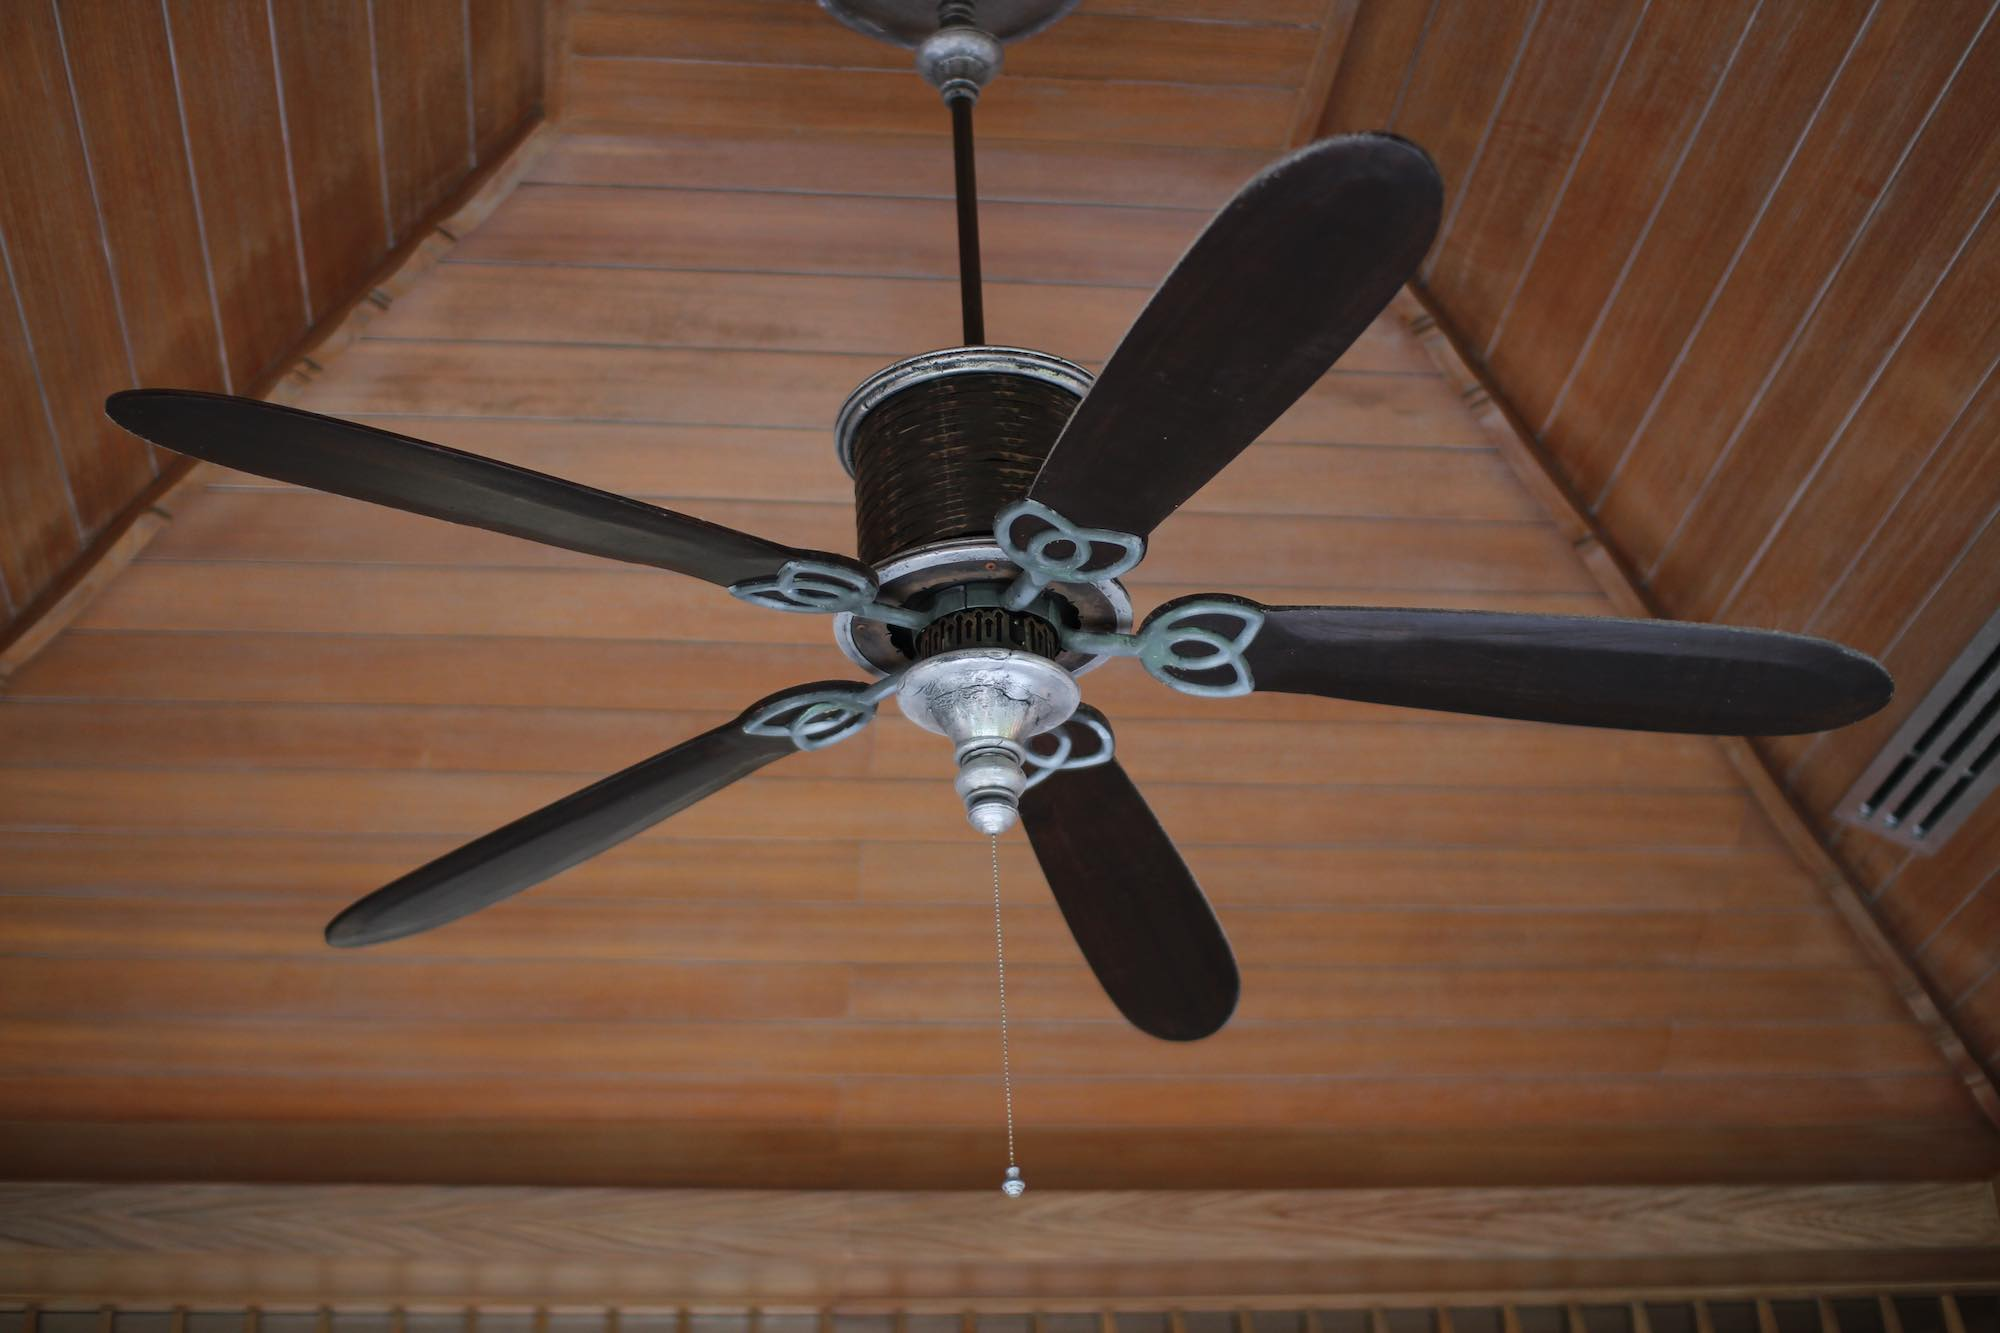 Tropical Ceiling Fans: What to Know Before Buying